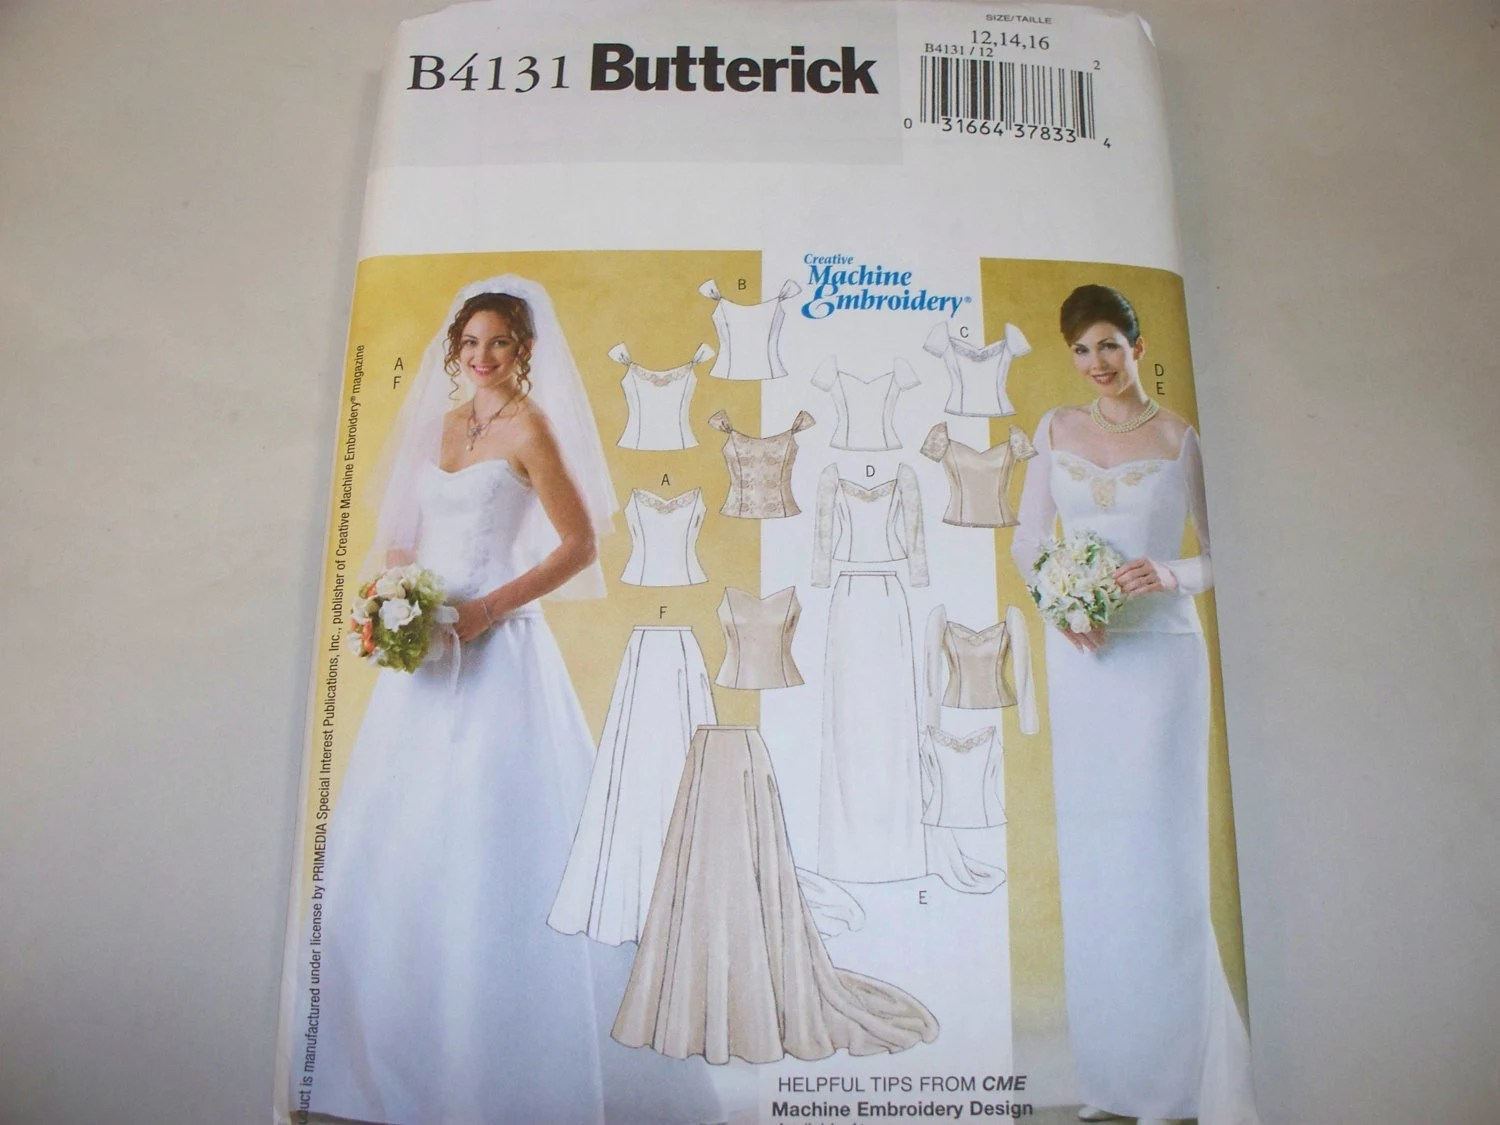 New Butterick Bridal Gown Pattern B4131 121416 Free US